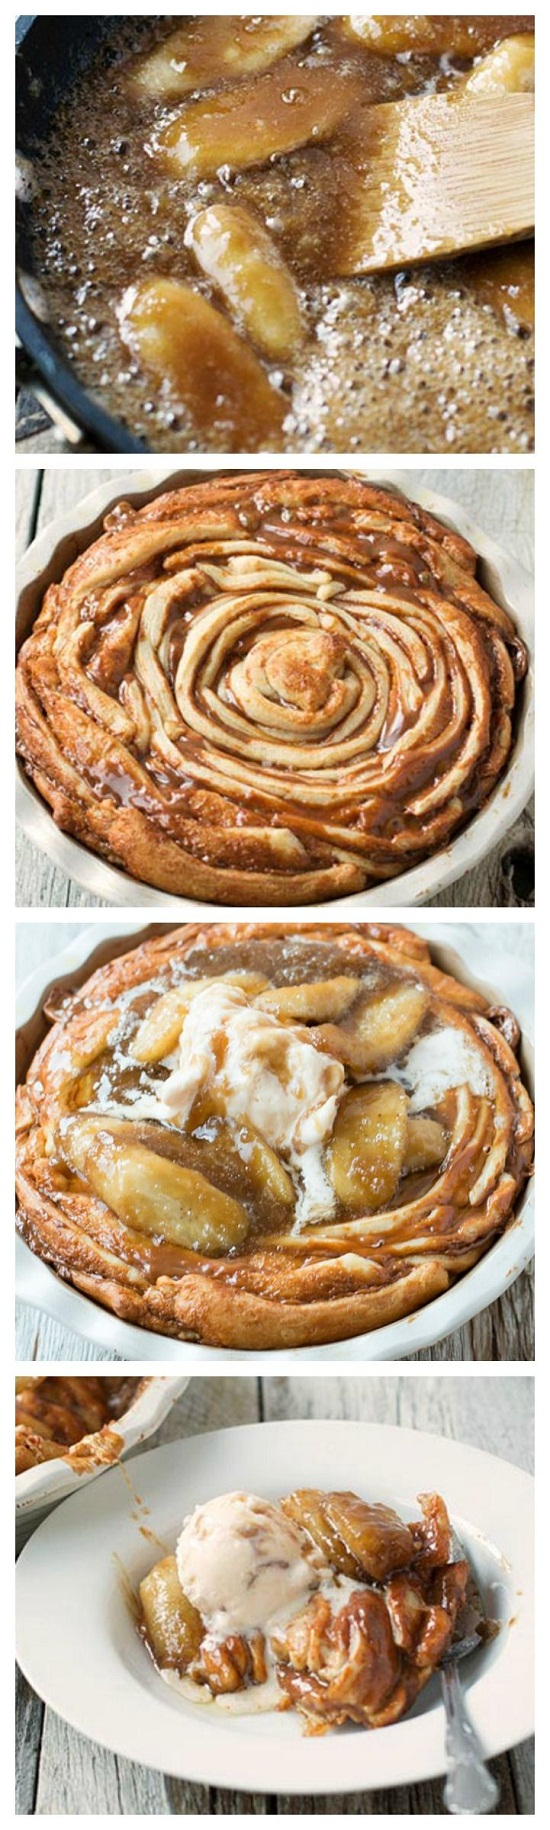 Bananas-Foster-Crescent-Swirl-Recipe